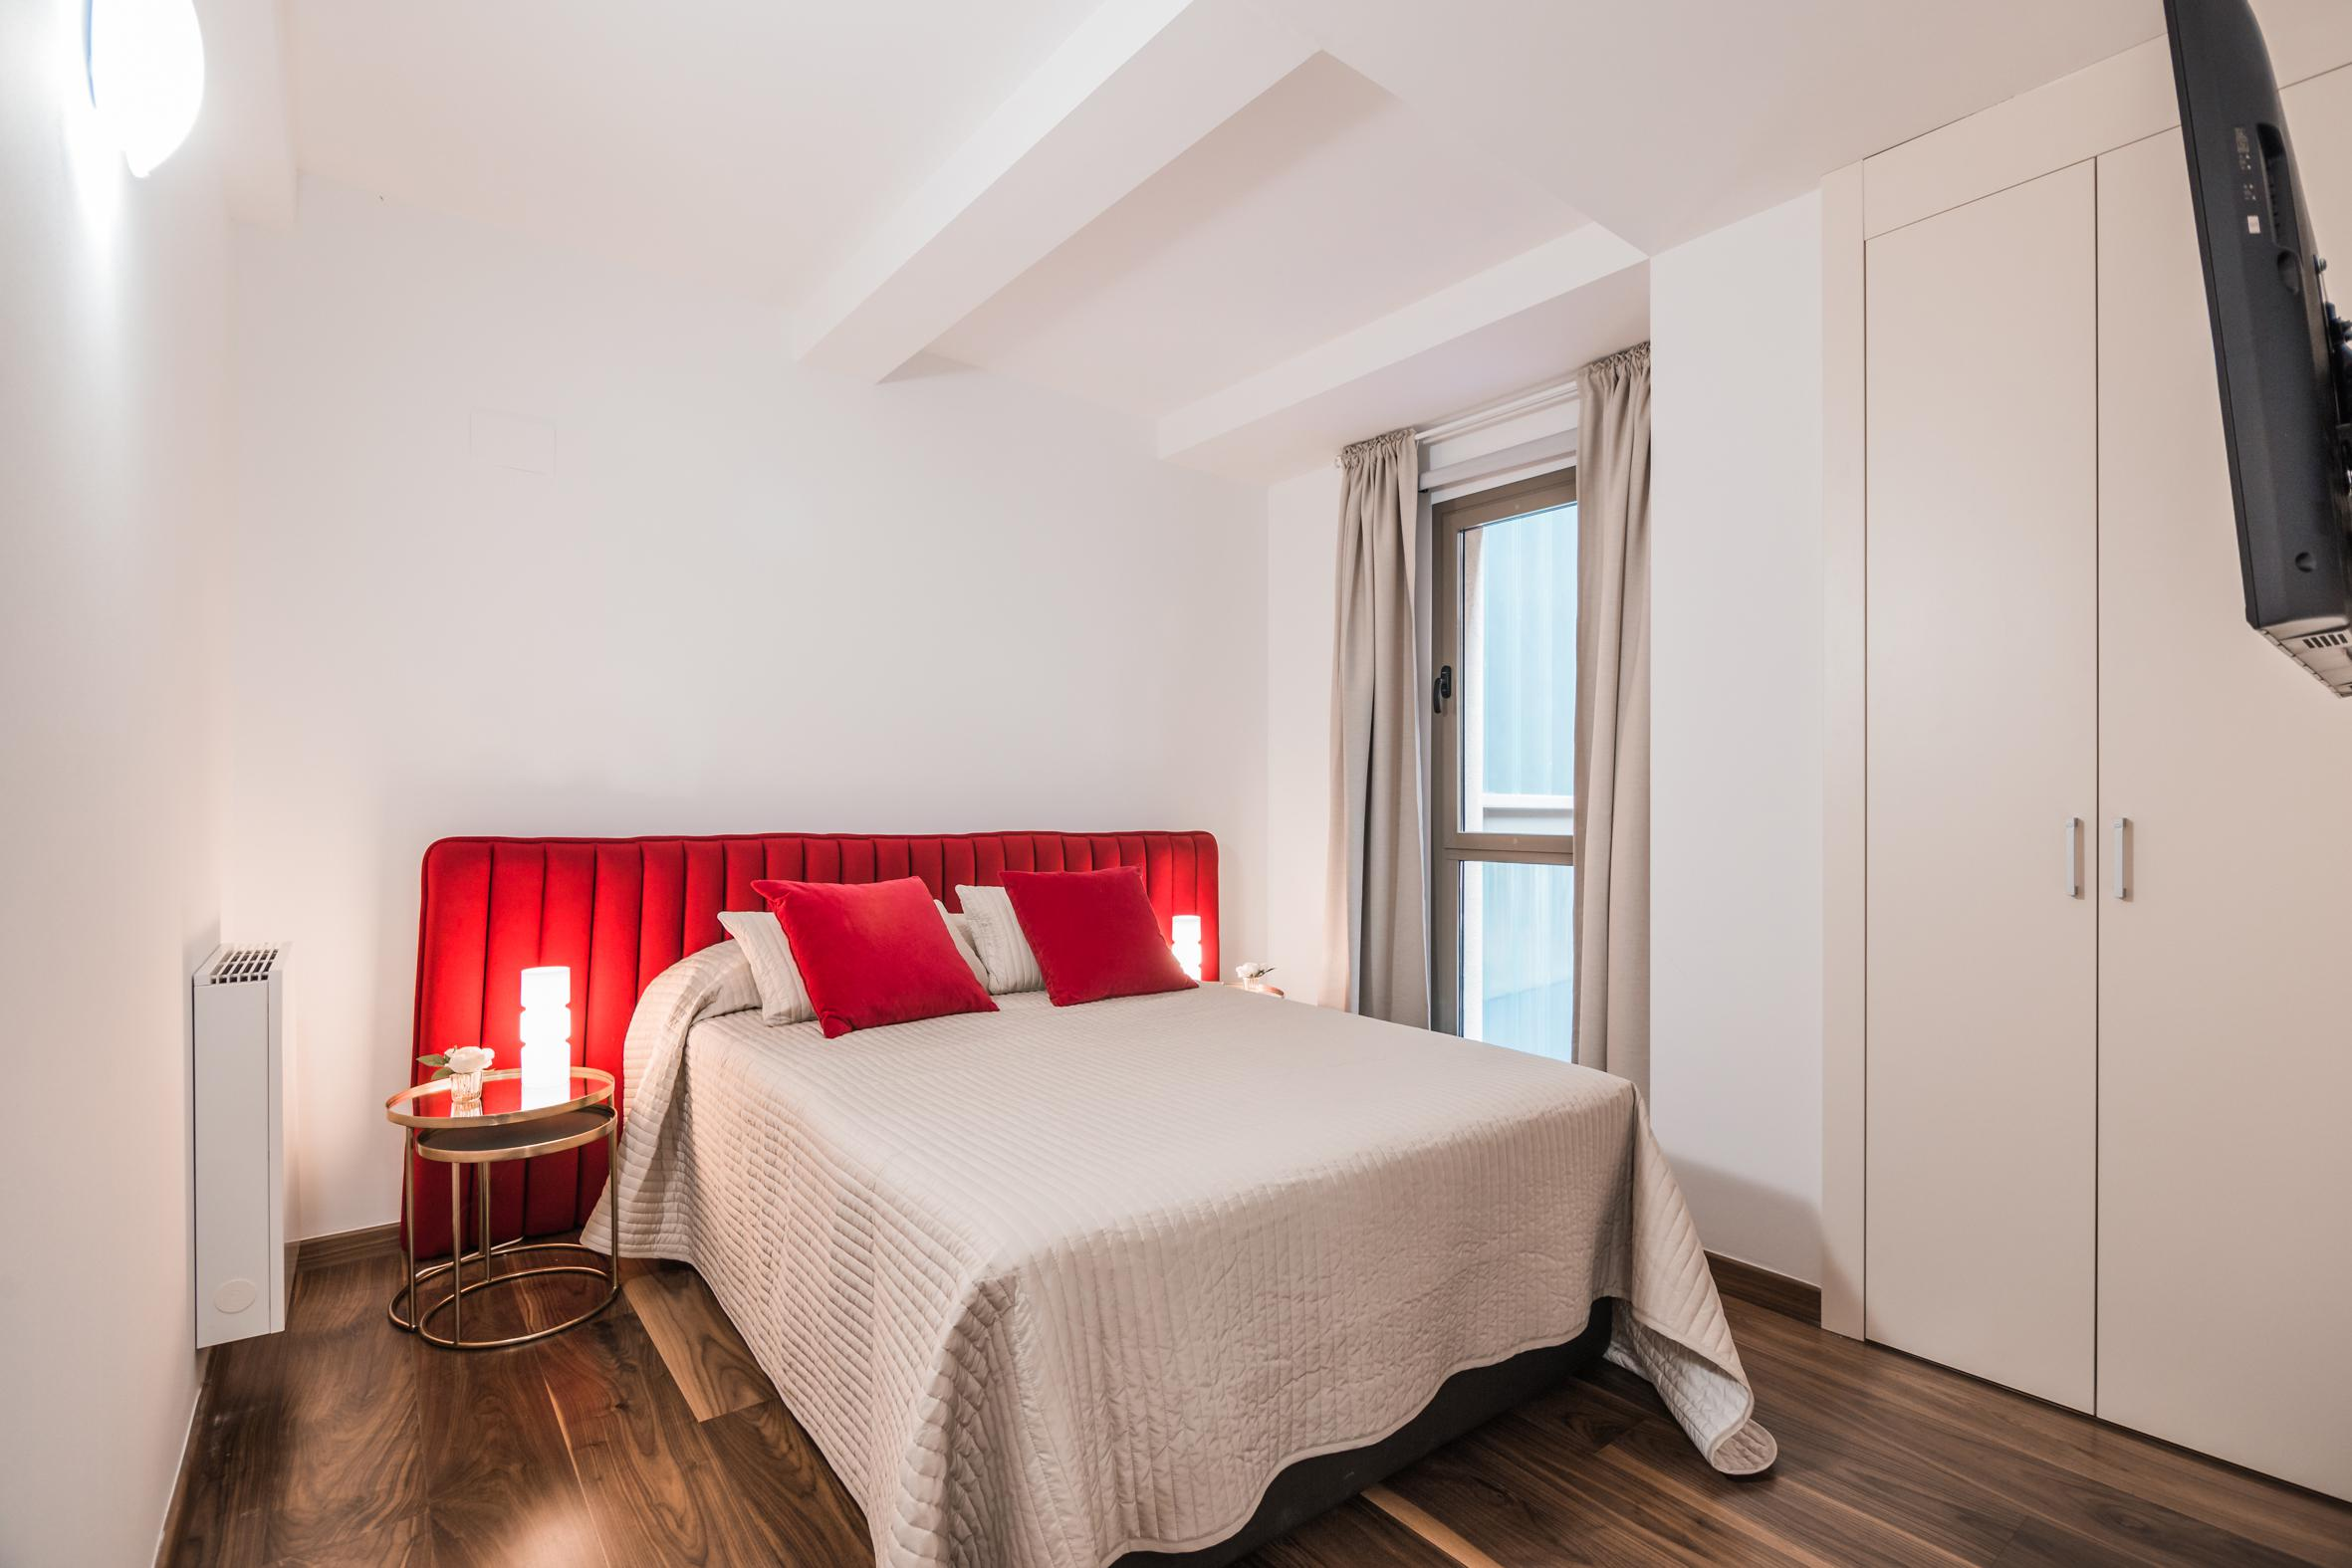 194056 Flat for sale in Ciutat Vella, Barri Gótic 6